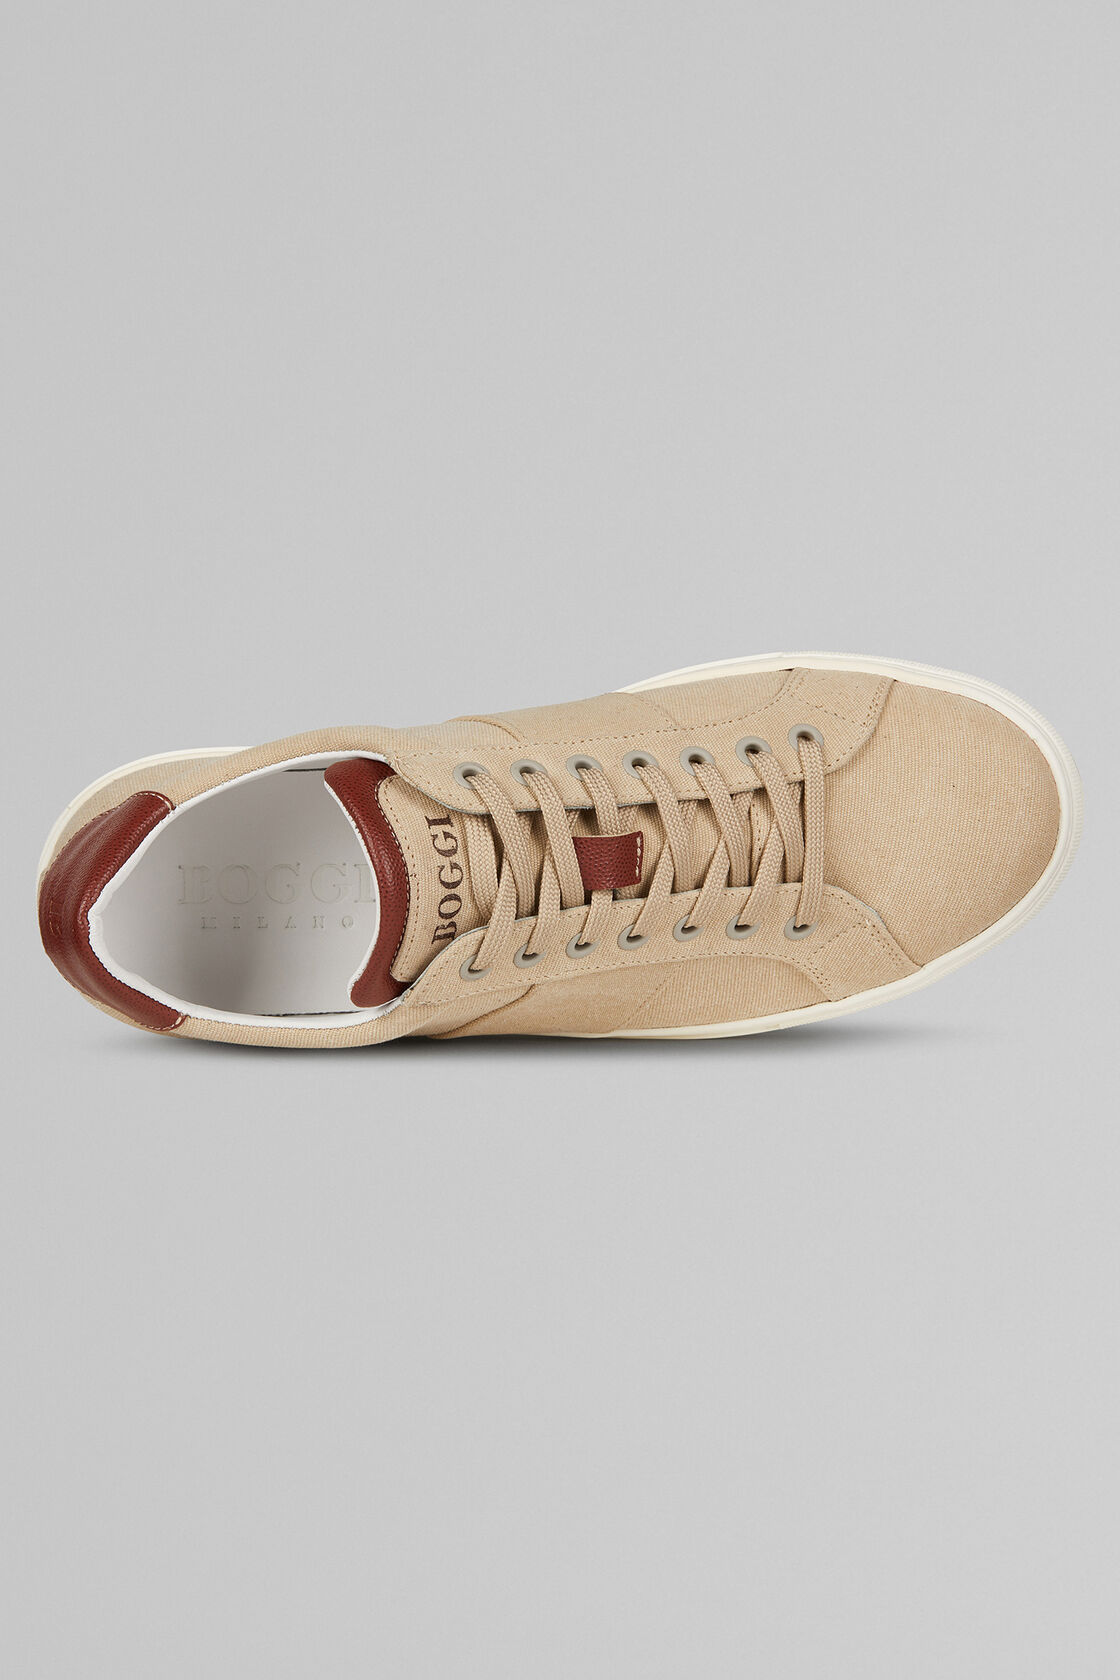 SNEAKERS IN COTONE, CUOIO - BEIGE, hi-res